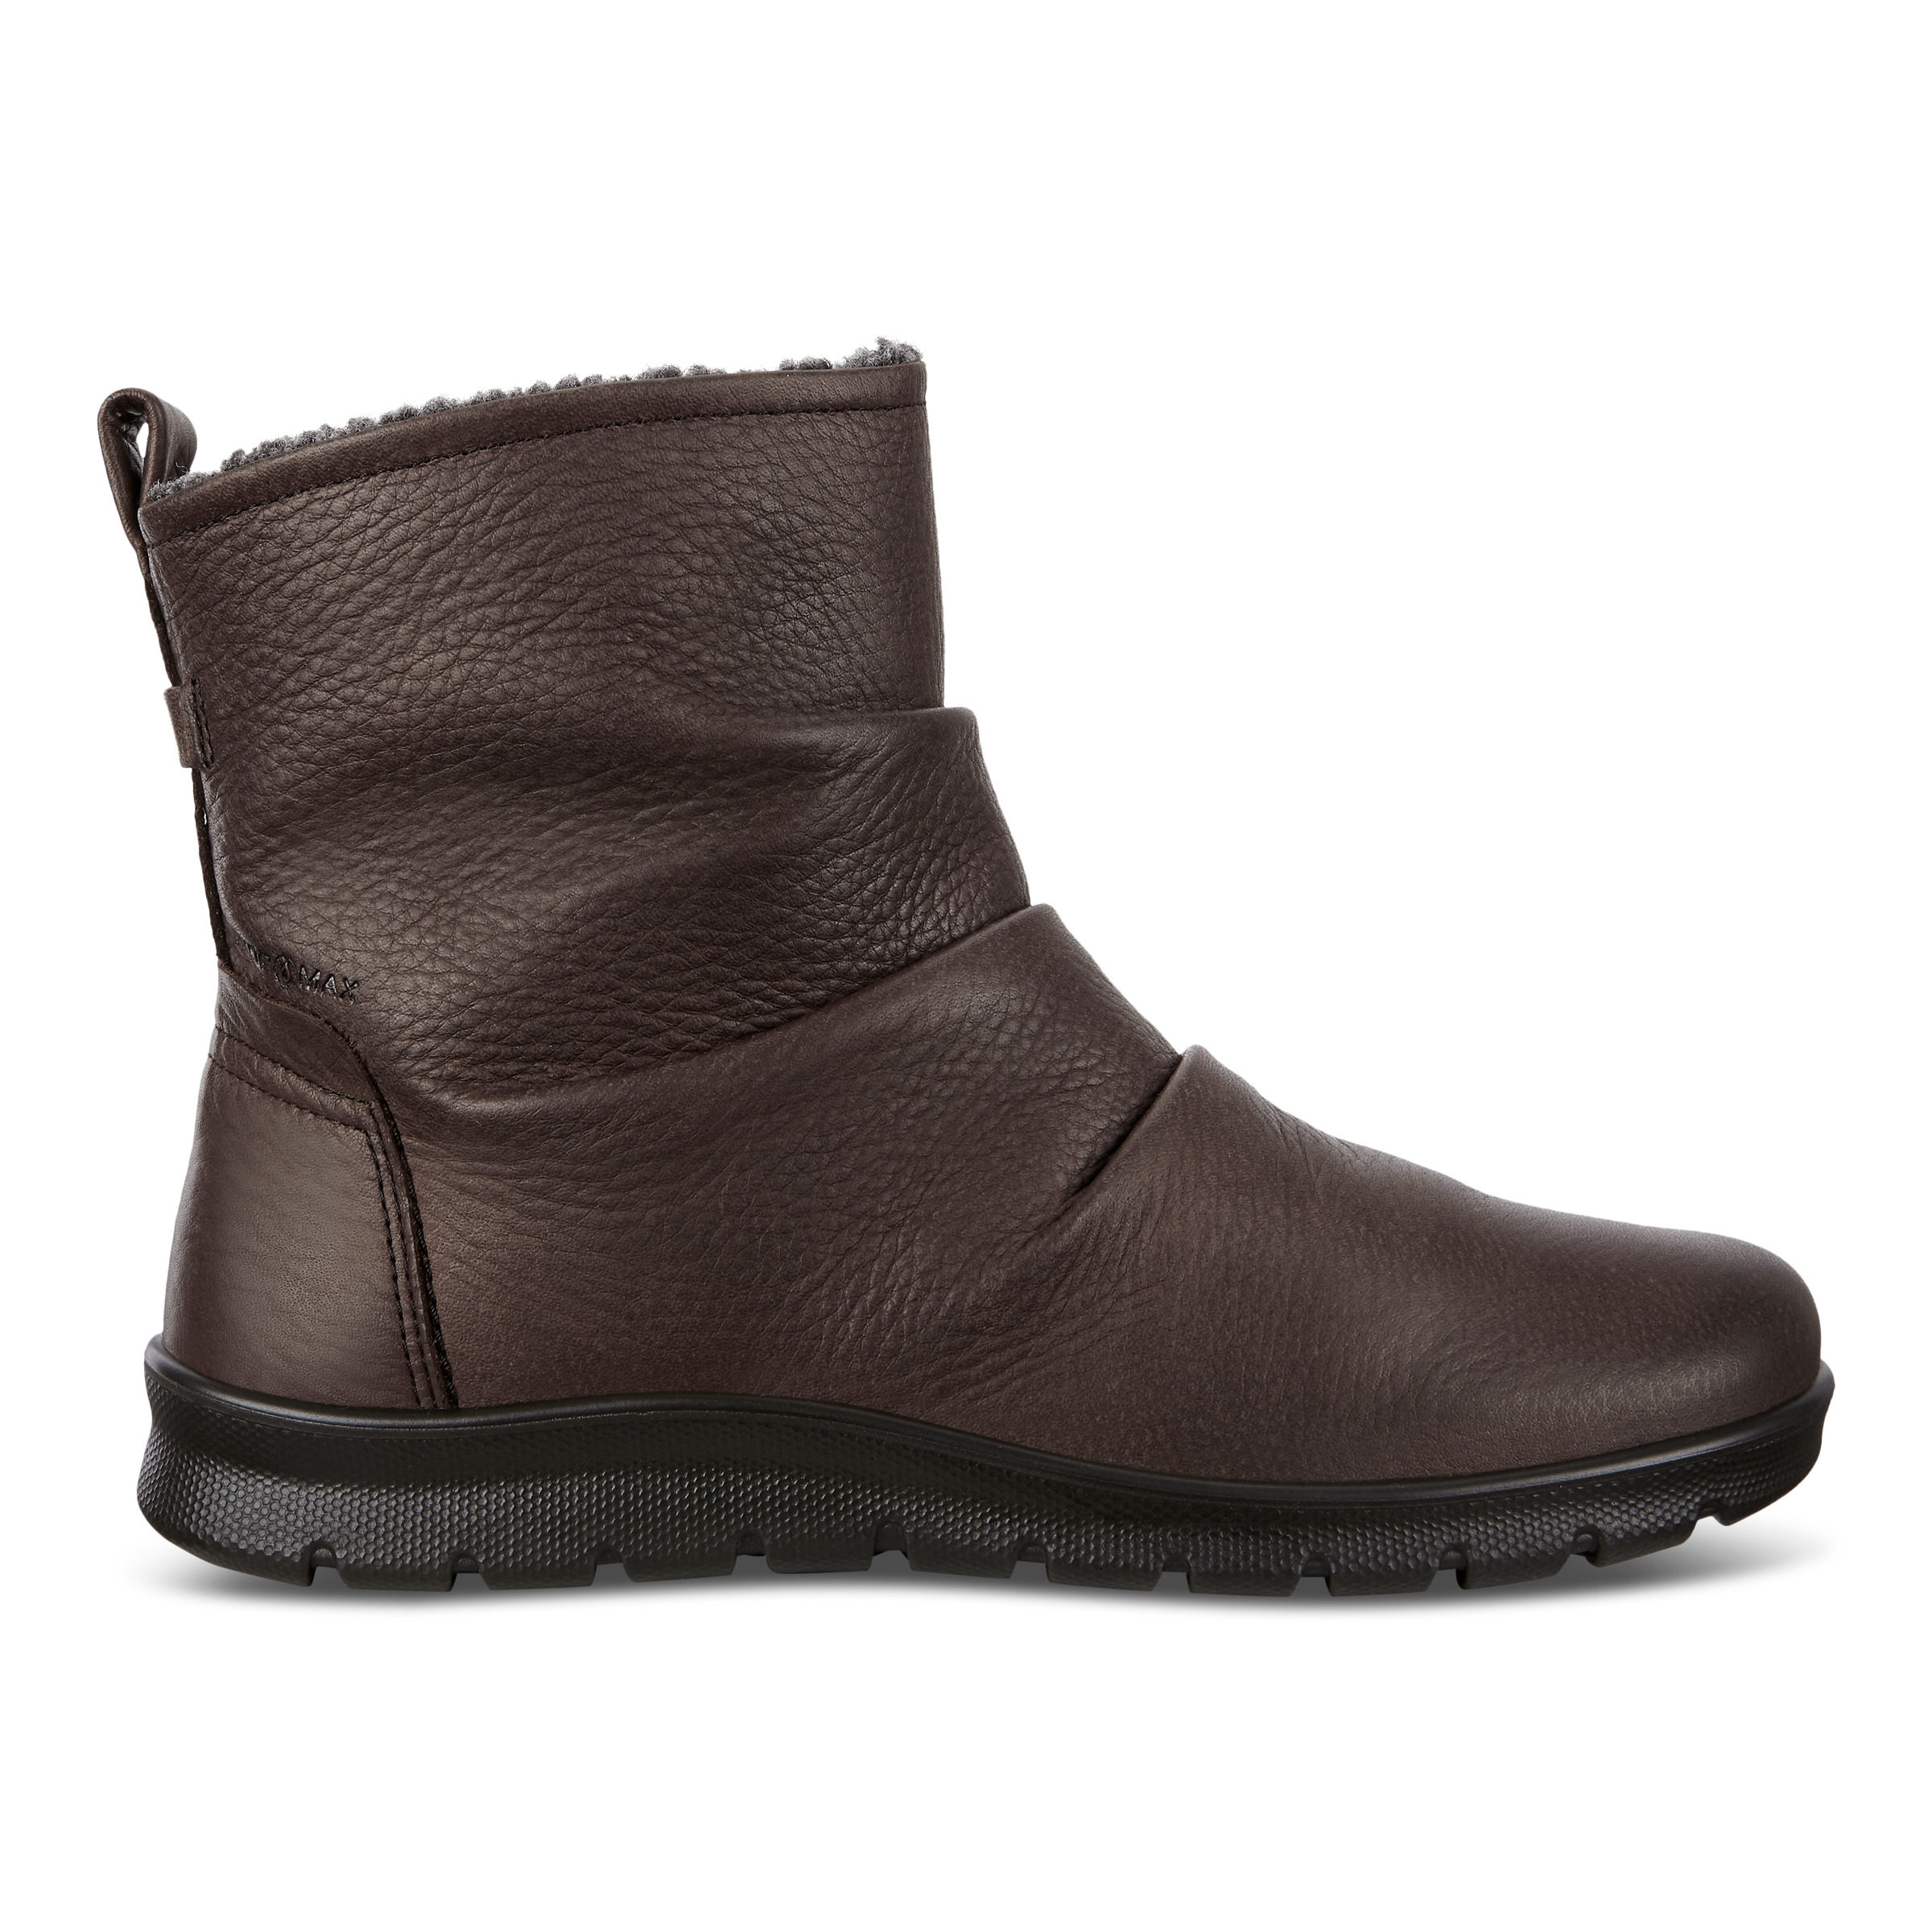 ECCO Babett Boot Ankle Boot Size 6-6.5 Coffee